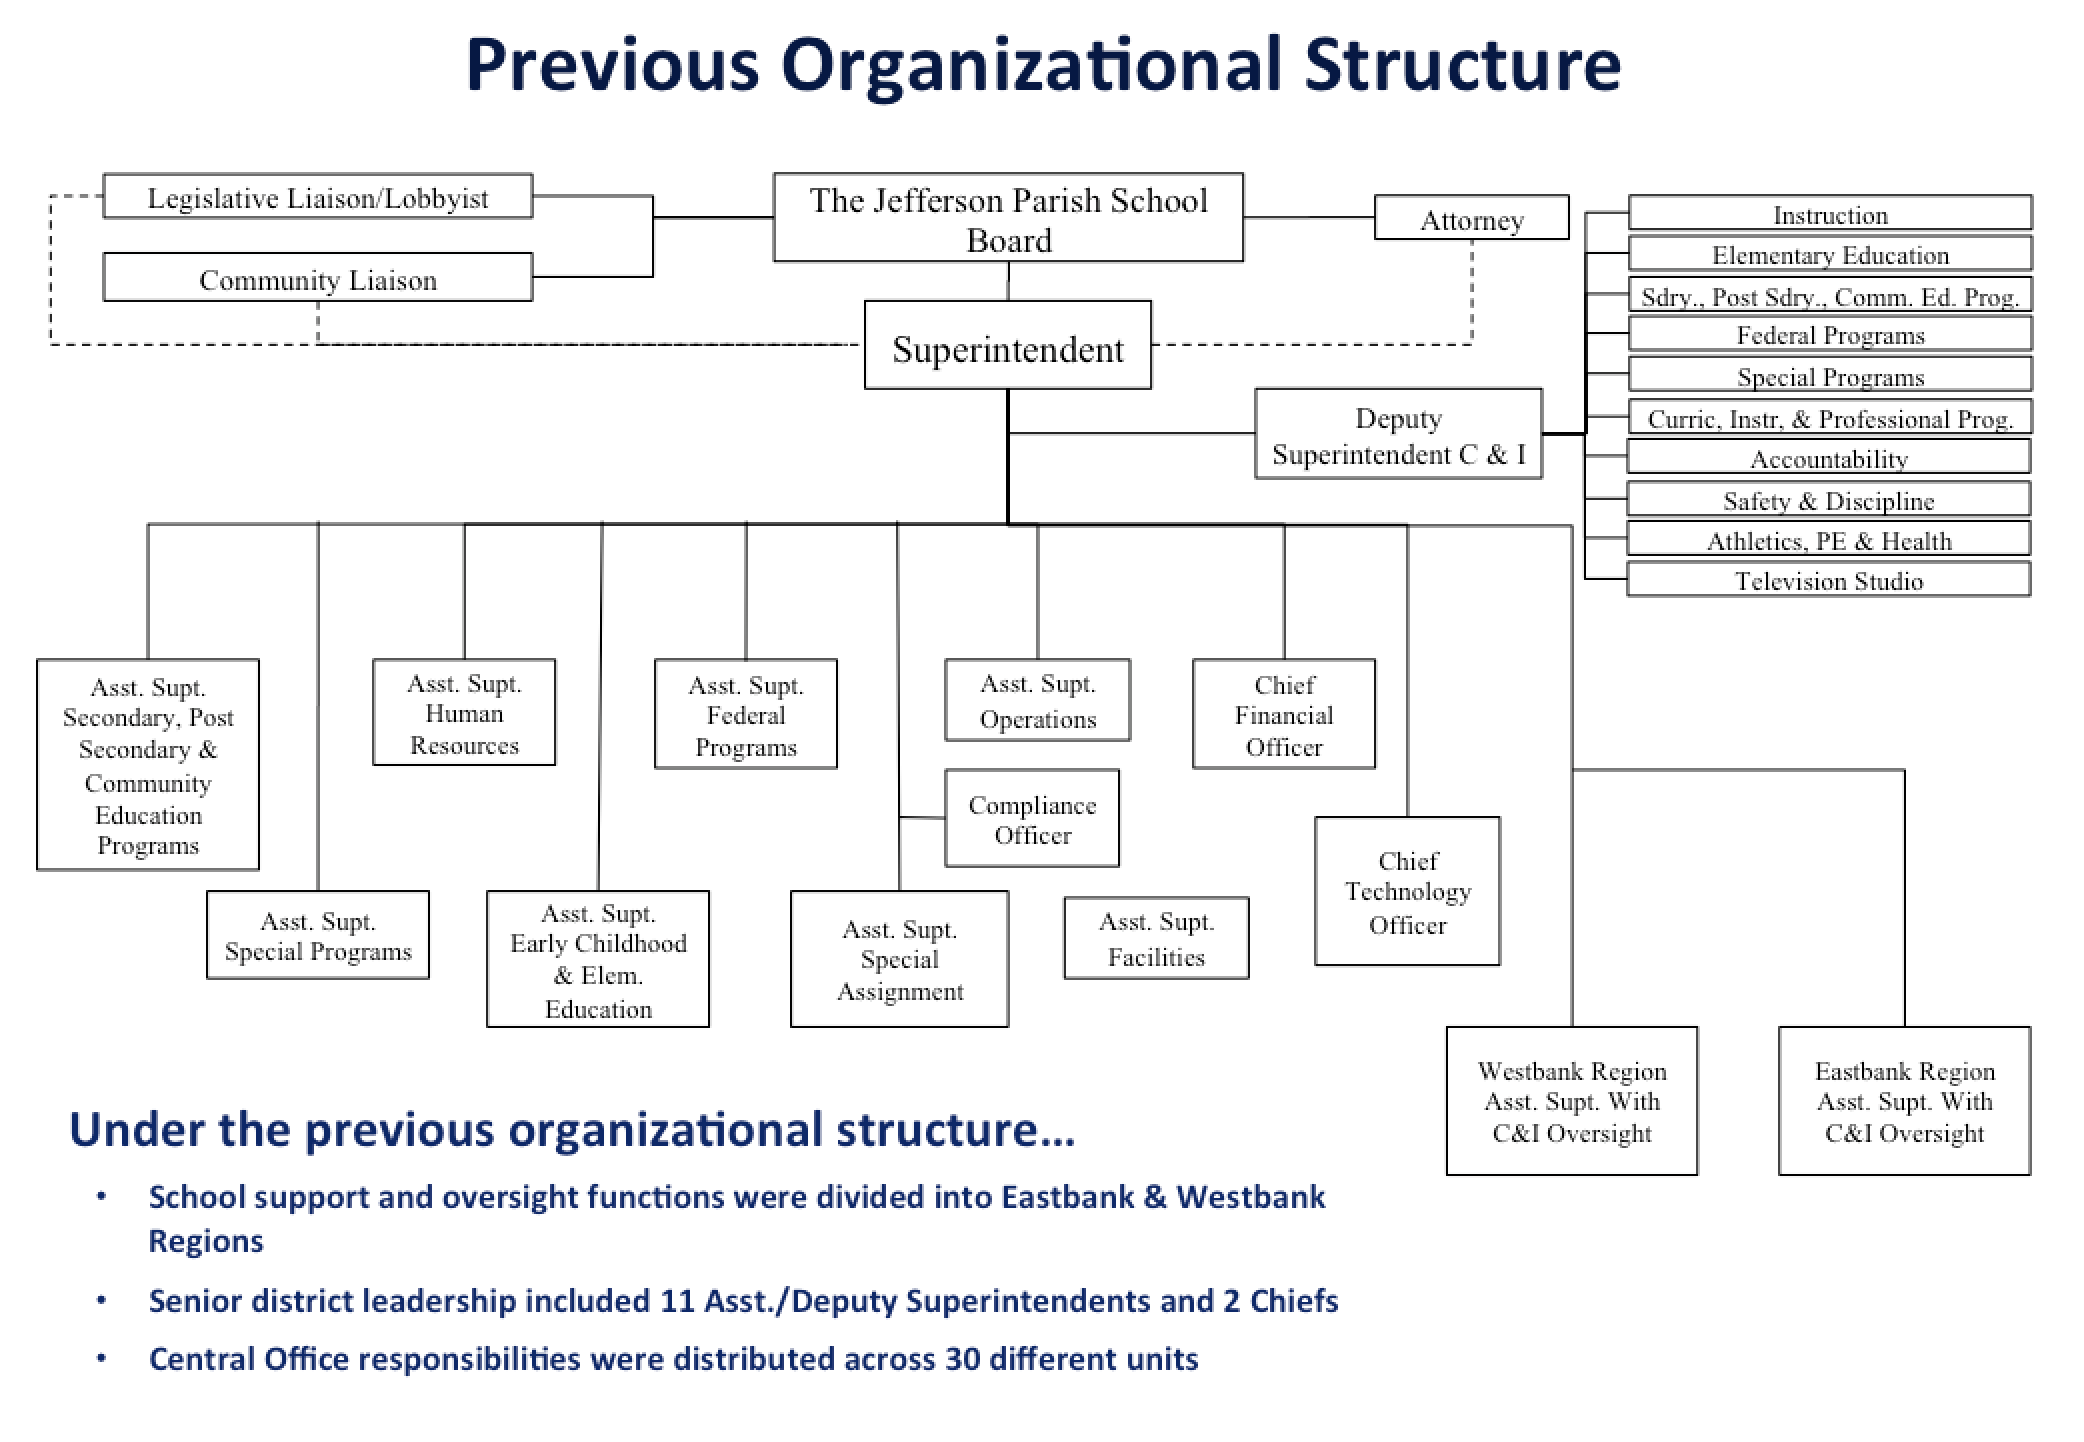 The previous JPPSS organizational structure